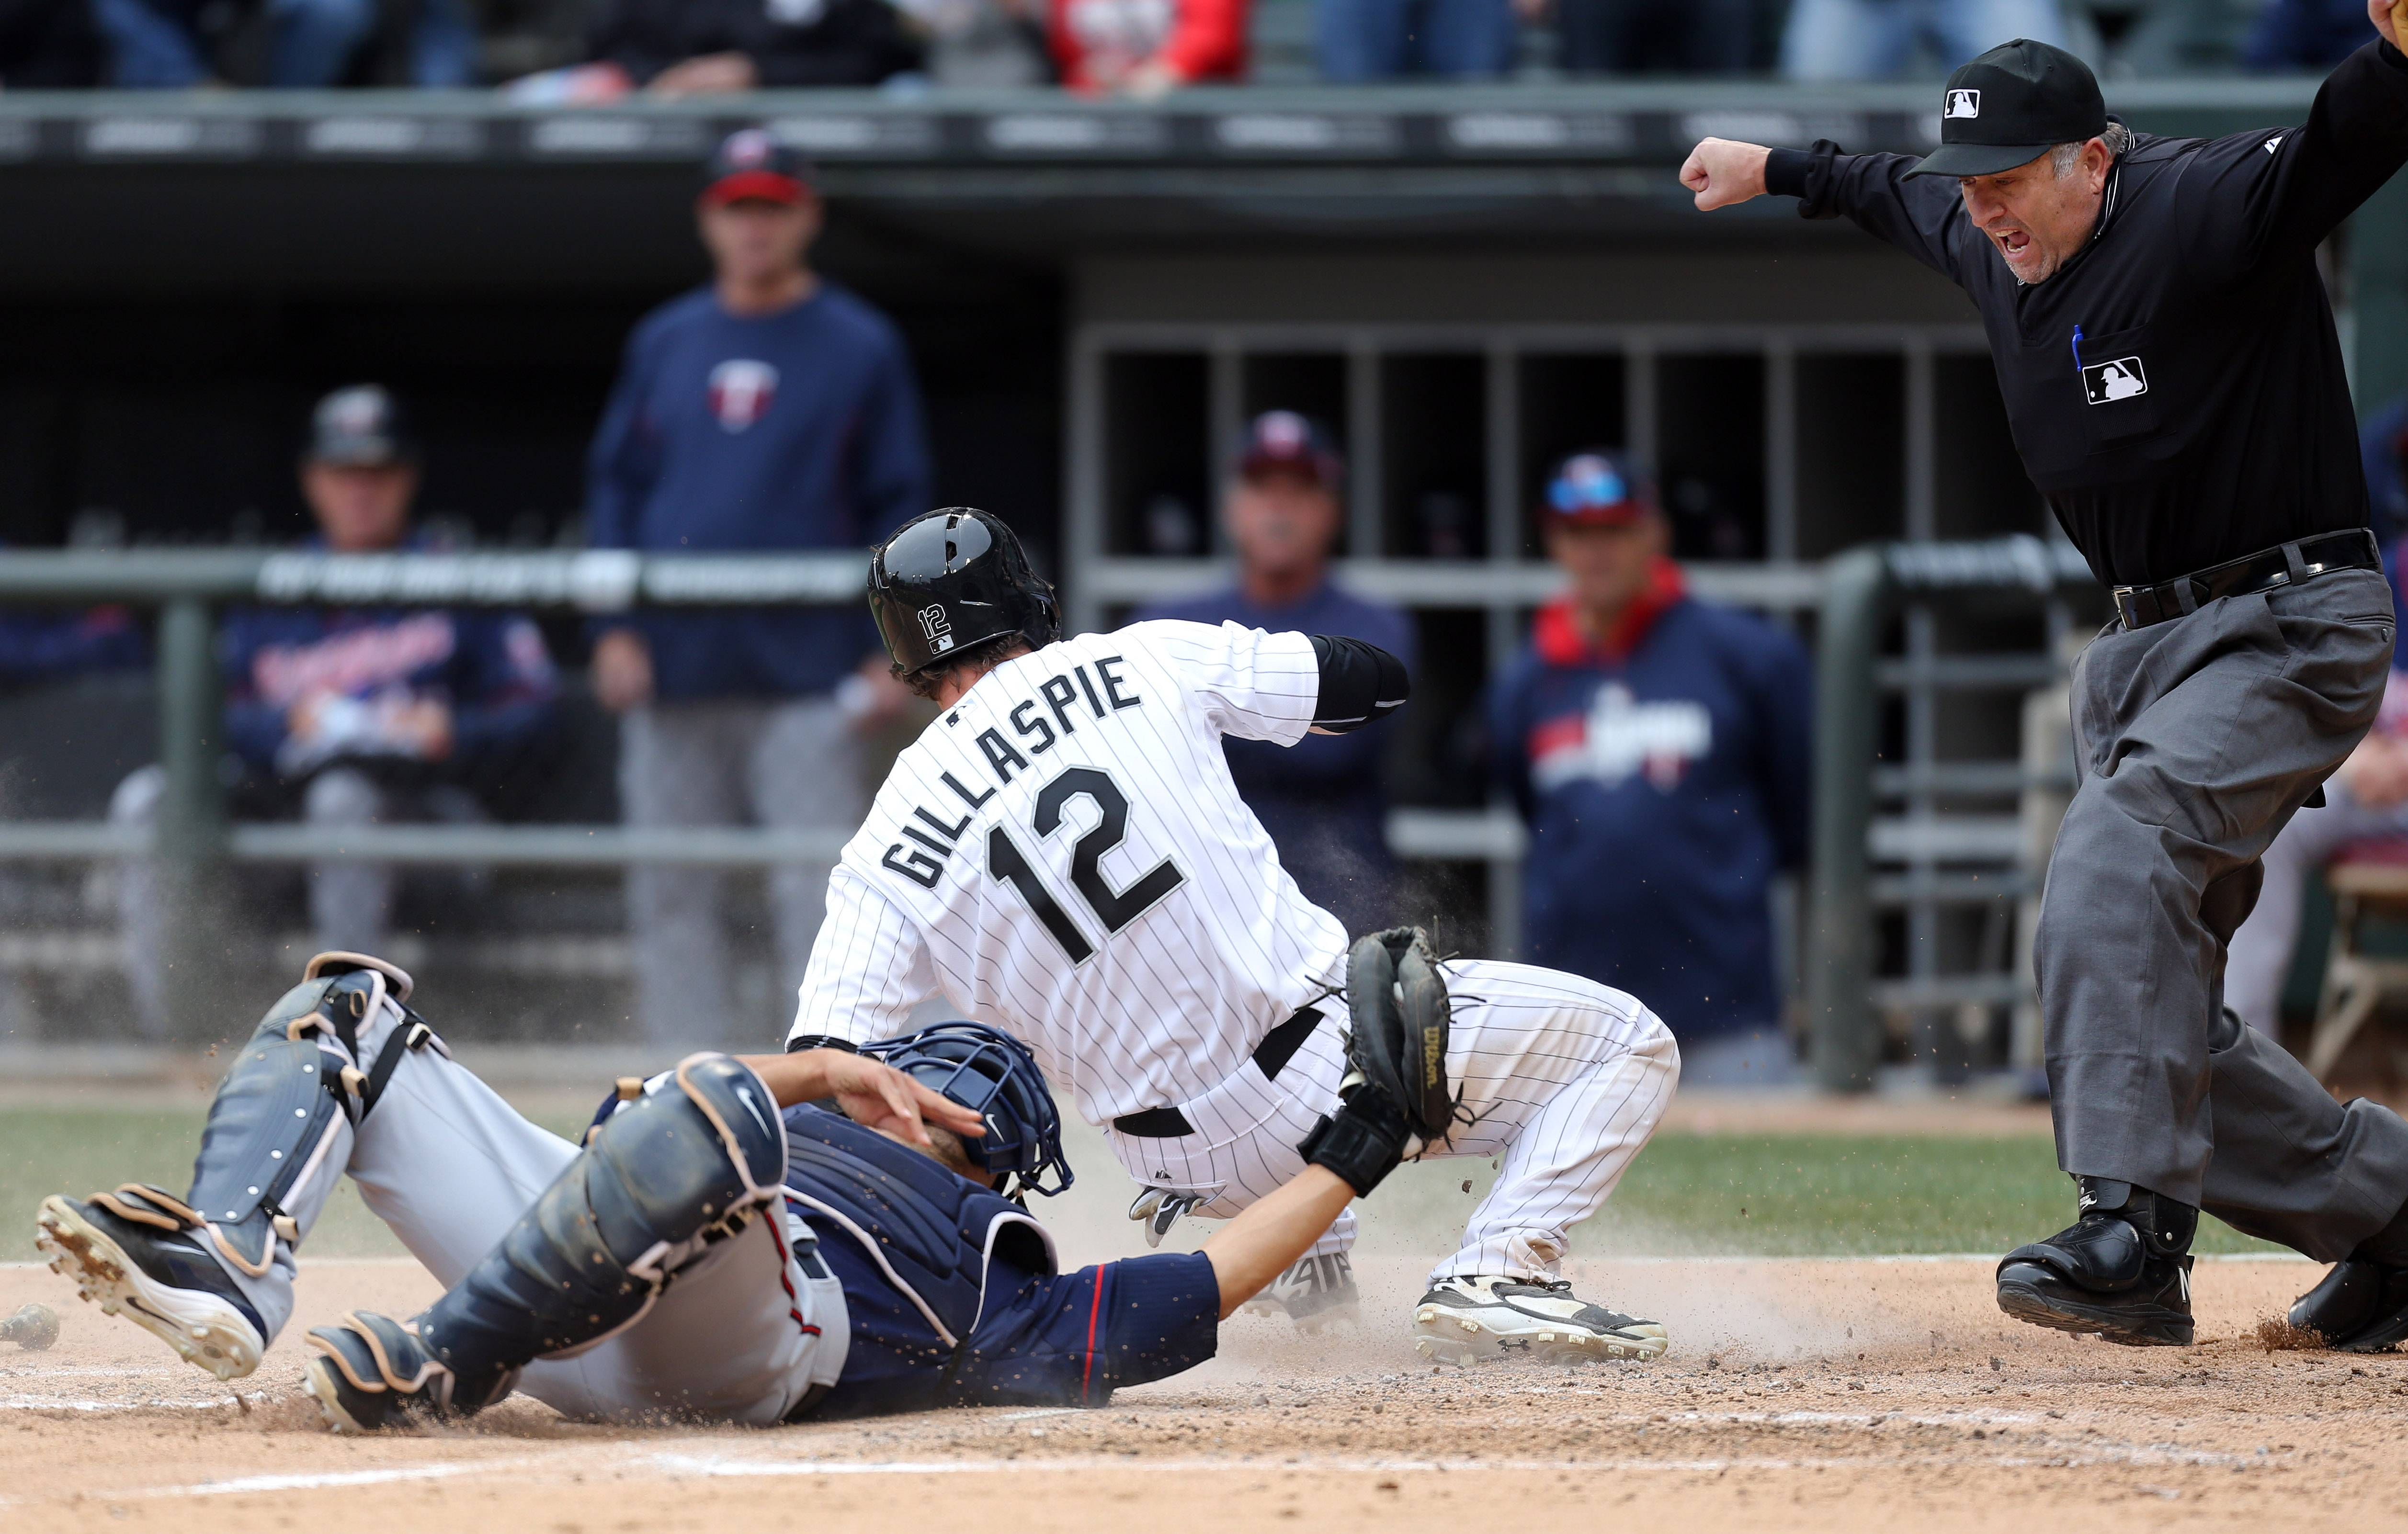 Chicago White Sox third baseman Conor Gillaspie scores on a play at home.